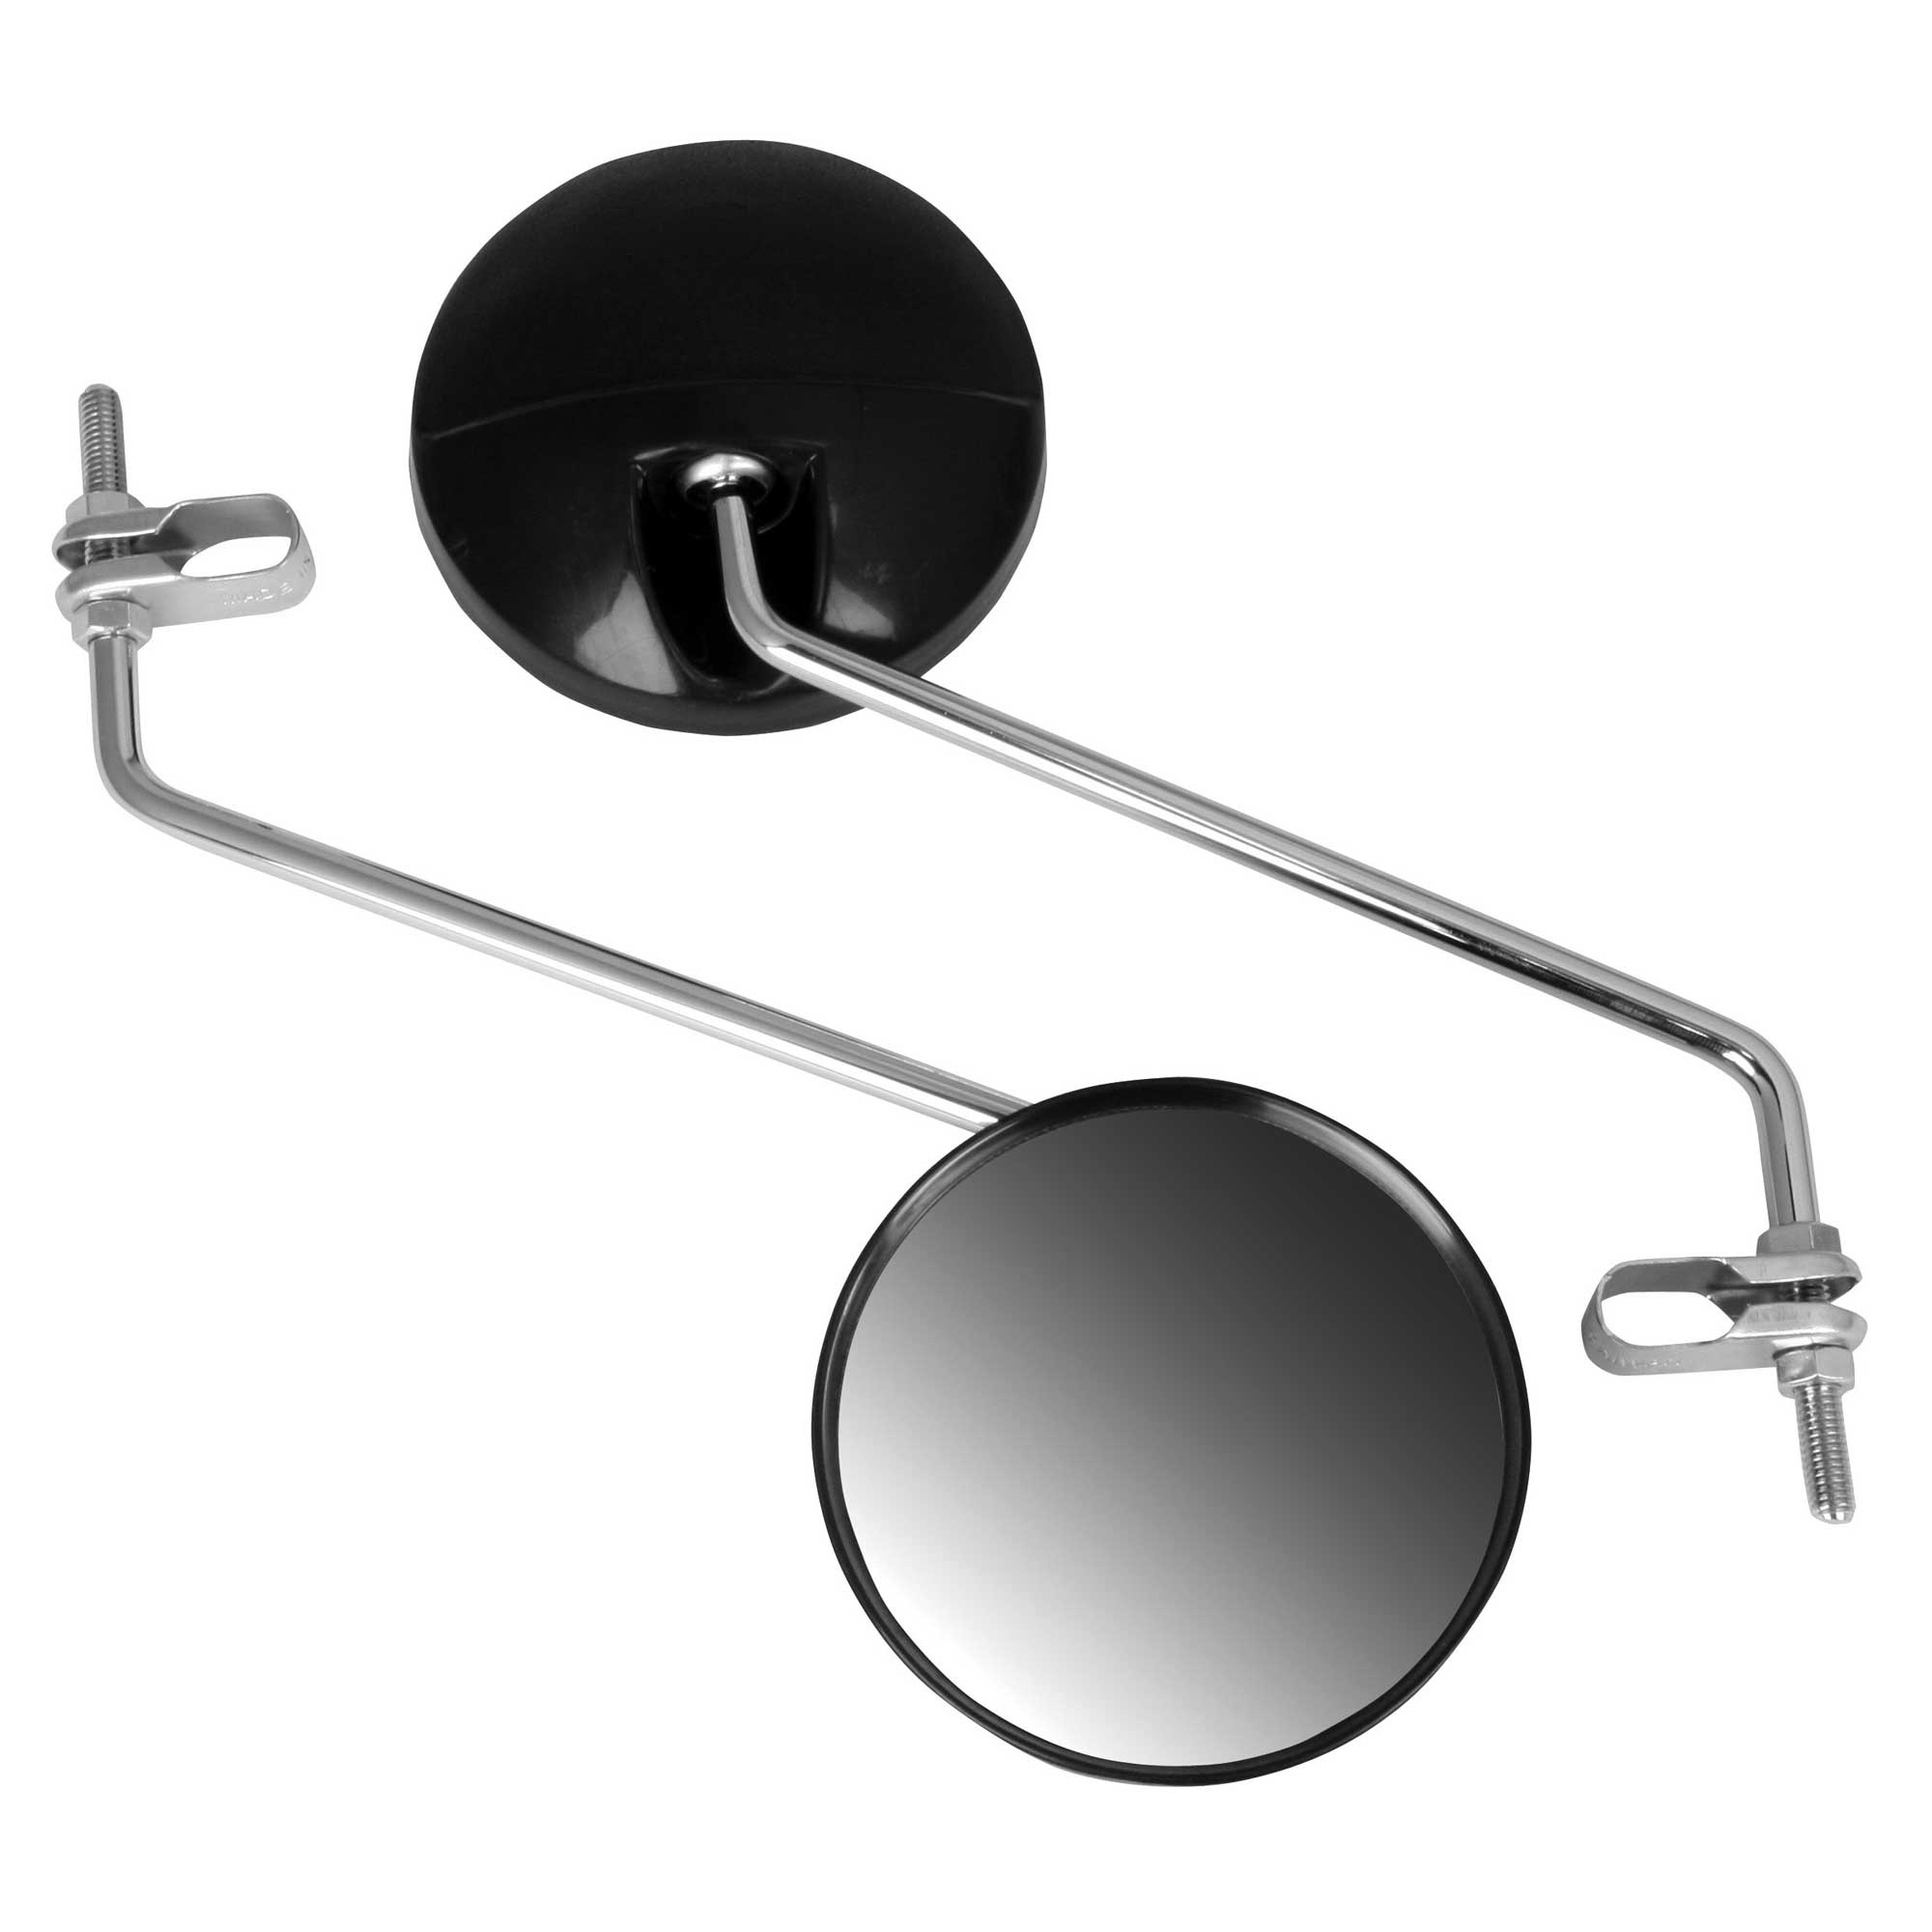 8mm Pair Round Black Scooter Moped Mirrors Universal Fit